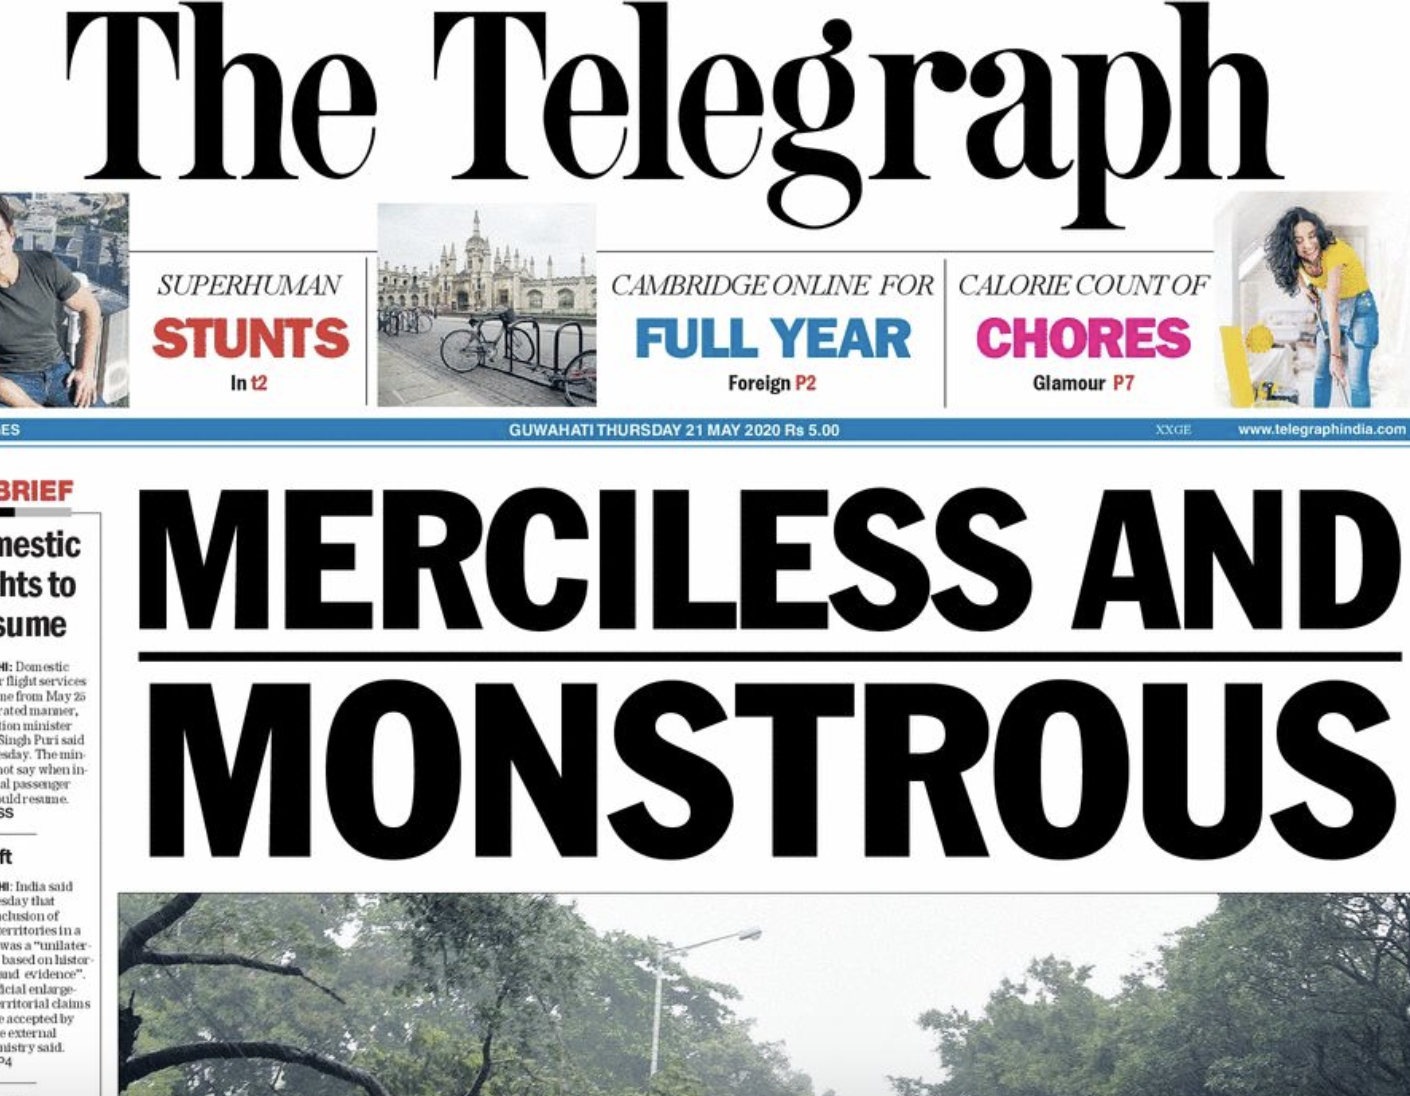 India: The Telegraph lays off 35 employees after Covid-19 pressures